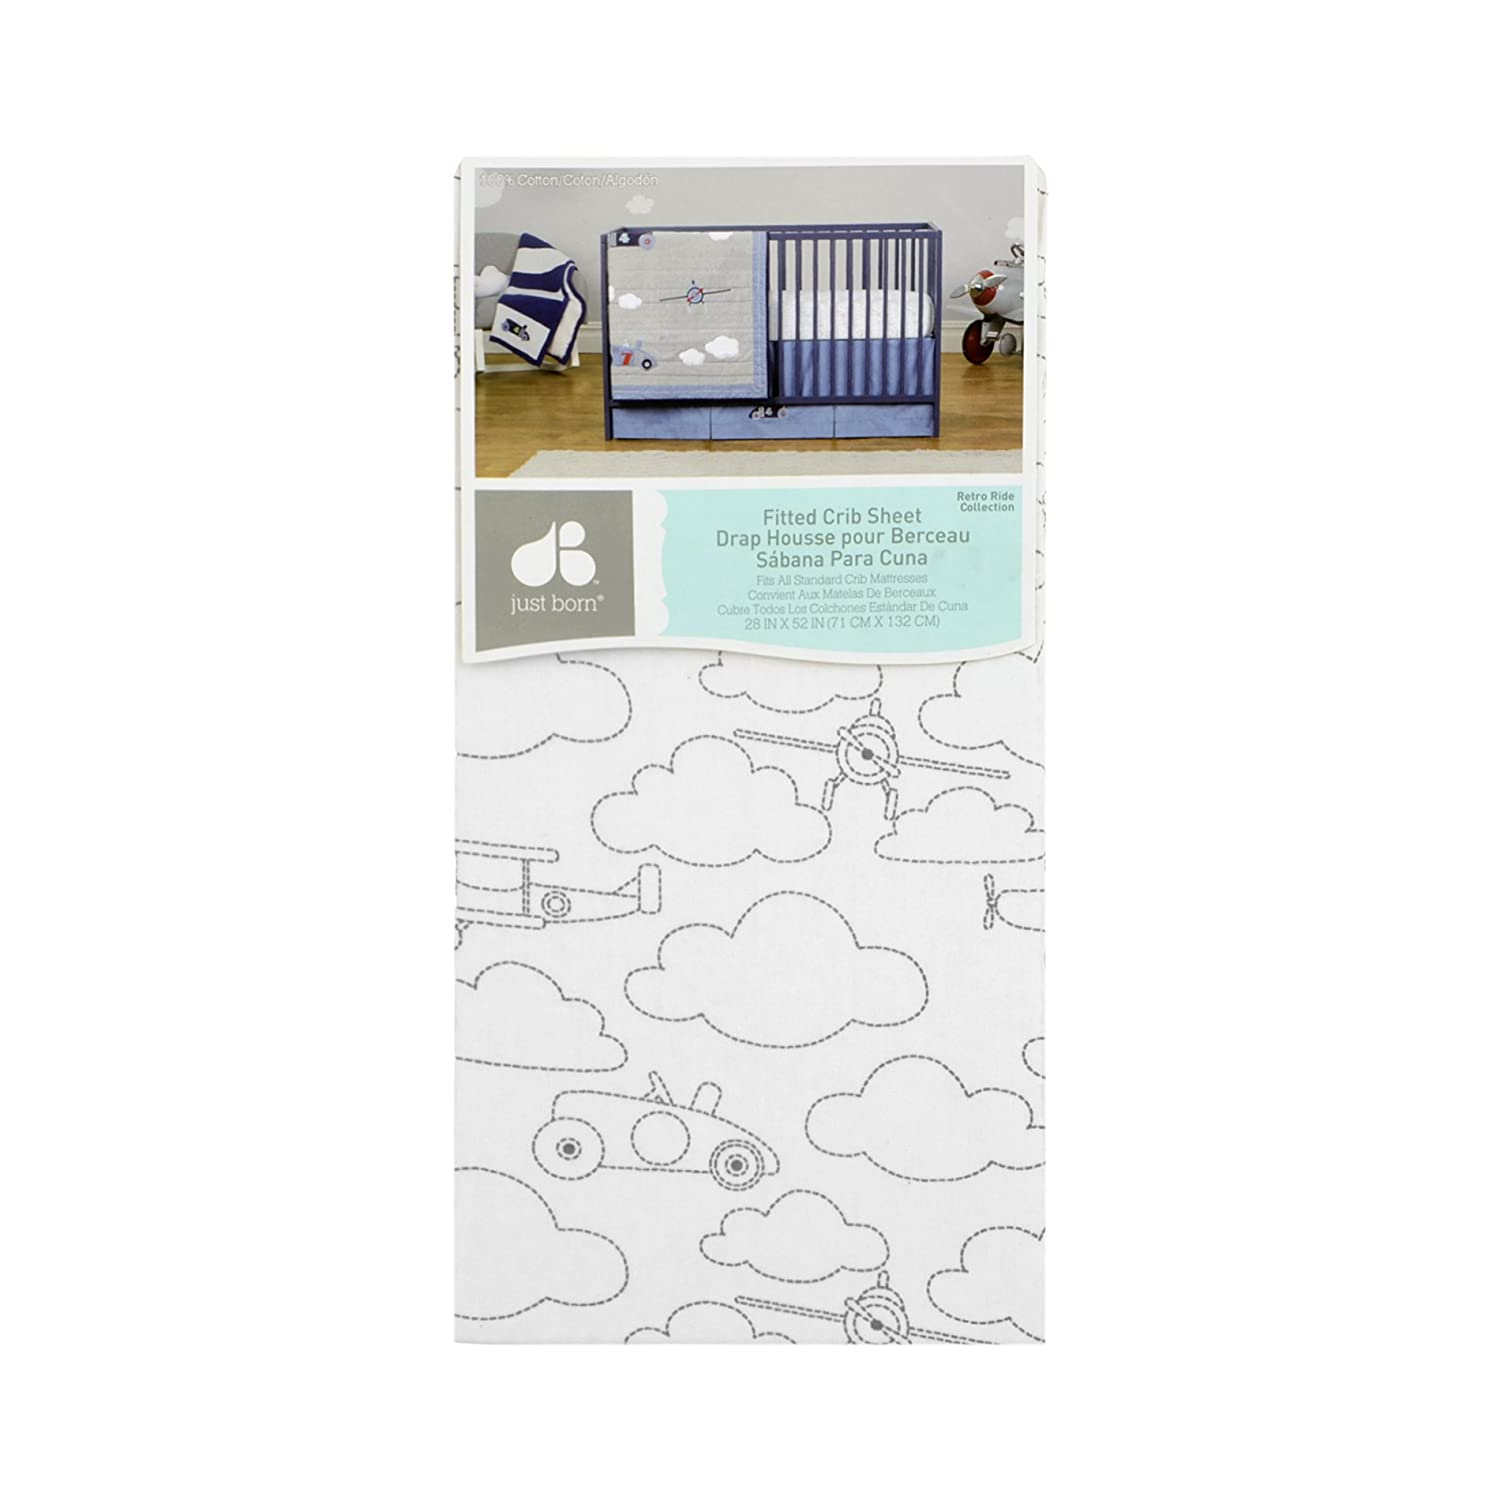 Amazon.com : Just Born Cotton Fitted Crib Sheet, Grey Gramercy Dot : Baby